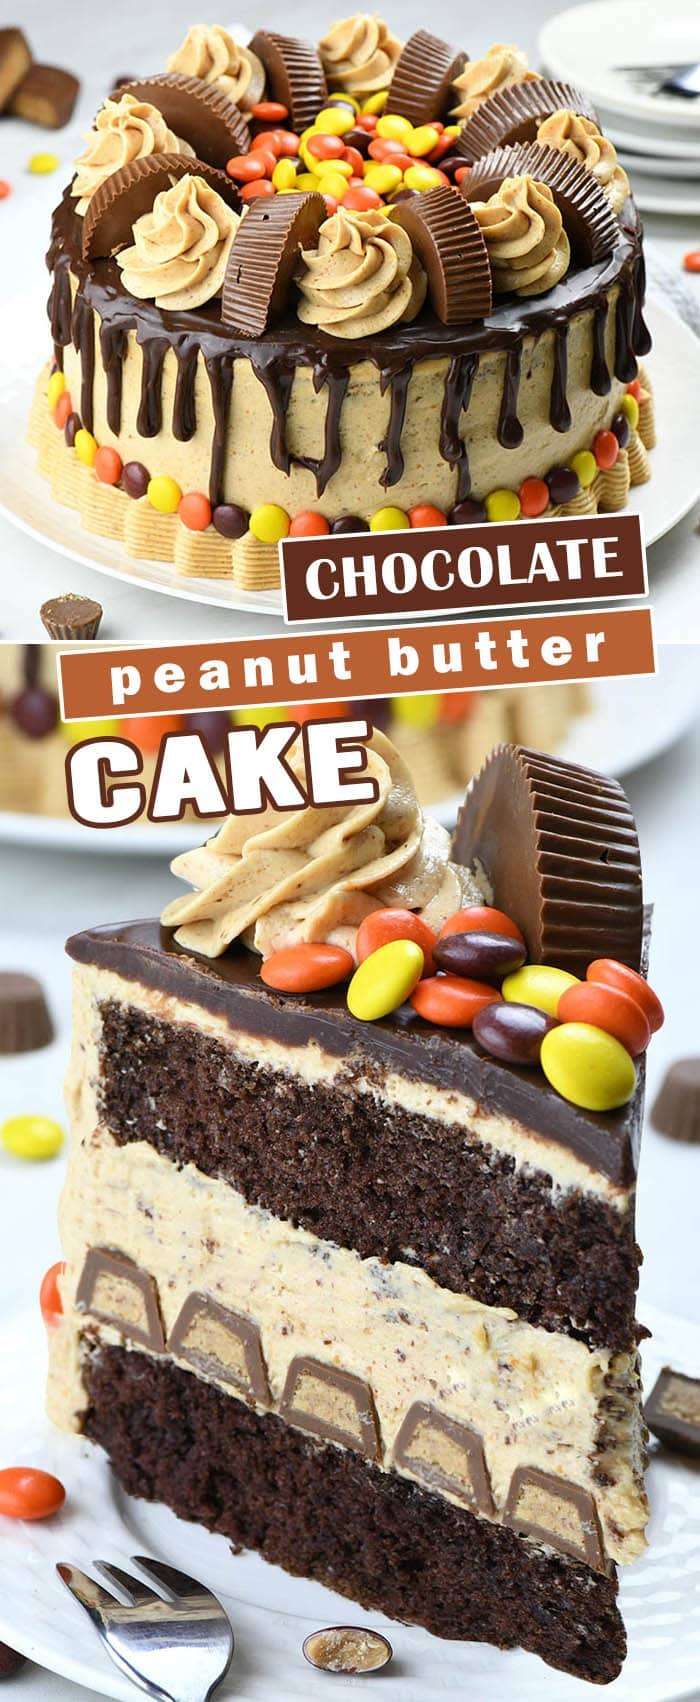 Peanut Butter Chocolate Cake is the ultimate chocolate peanut butter dessert recipe. Fudgy chocolate cake layers with creamy peanut butter cheesecake filling, overloaded with tons of peanut butter cups and silky milk chocolate ganache on top.